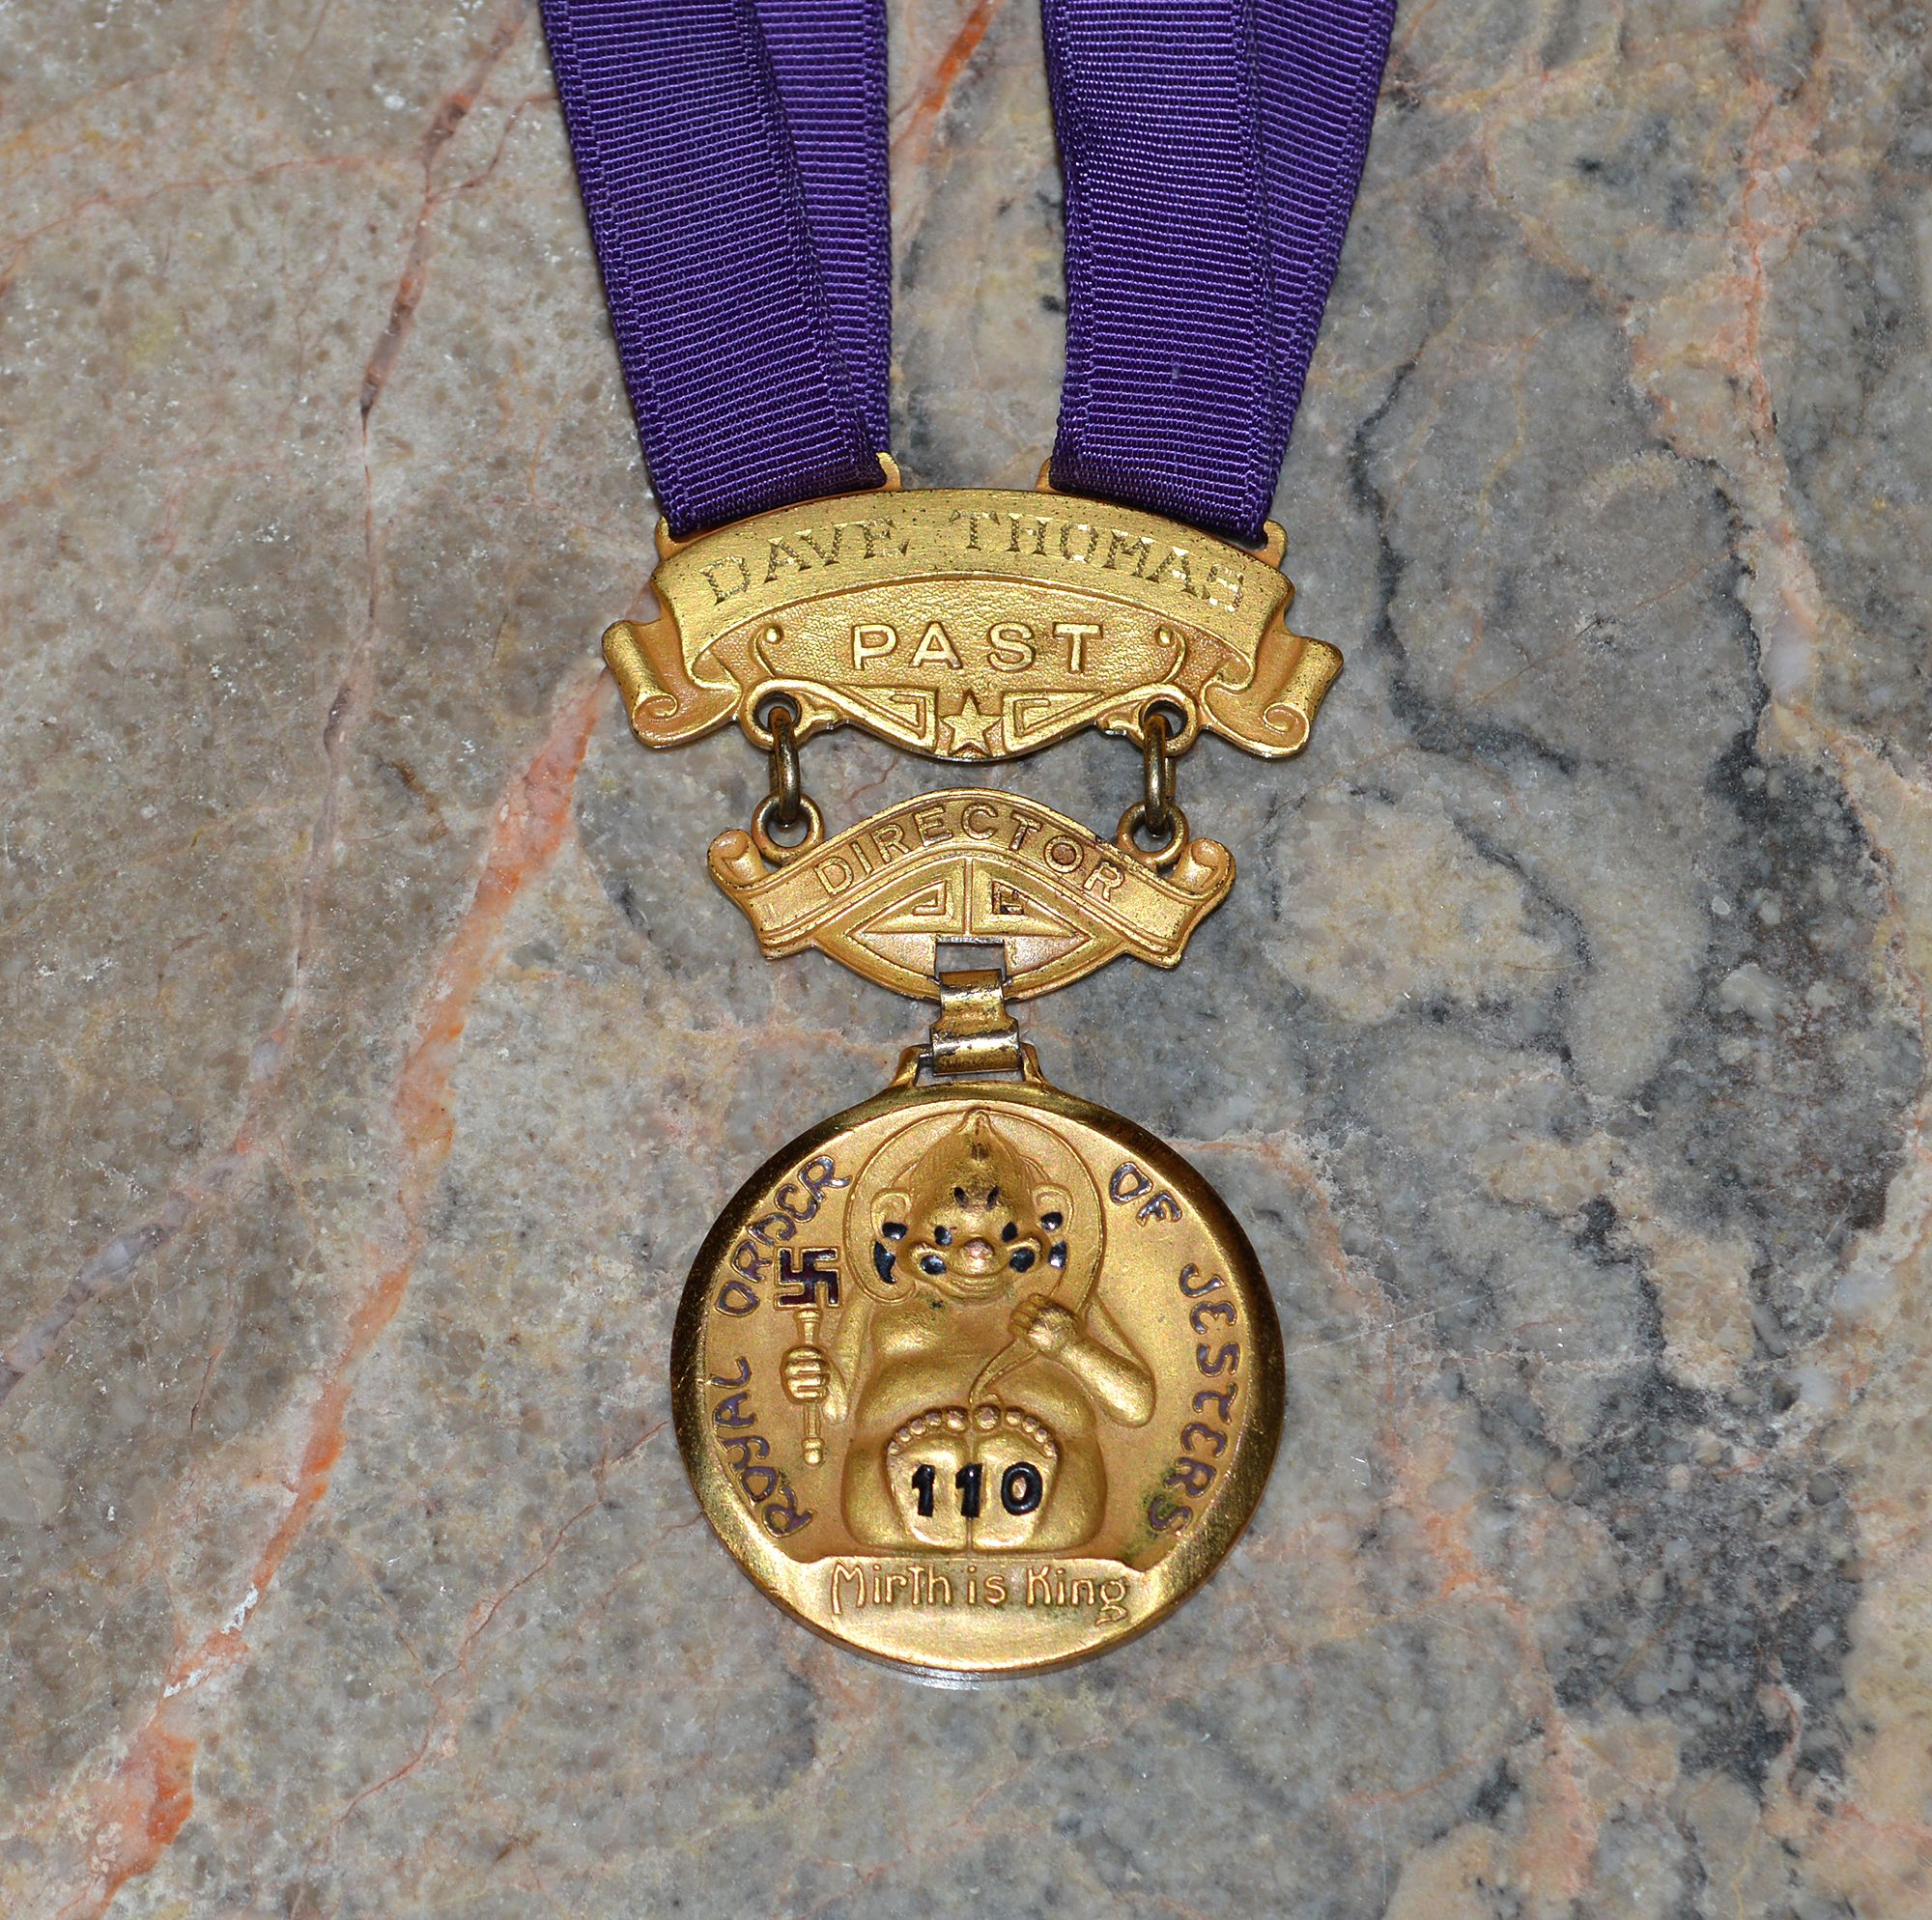 This Masonic jewel from The Royal Order of Jesters belonged to the